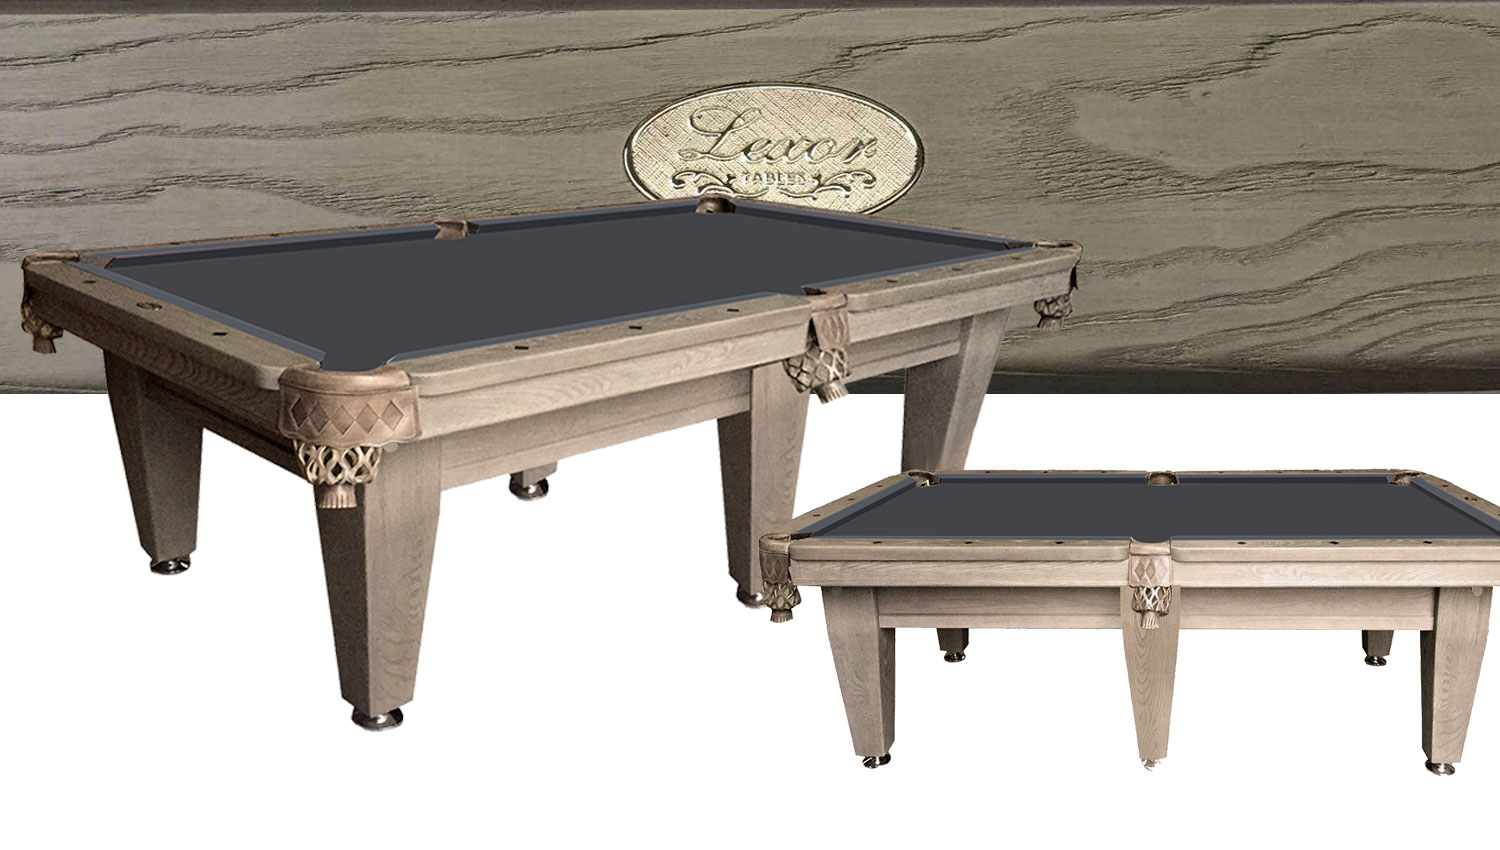 PC0261: Pooltafel Lexor Imperator Competition Pro Old-Grey